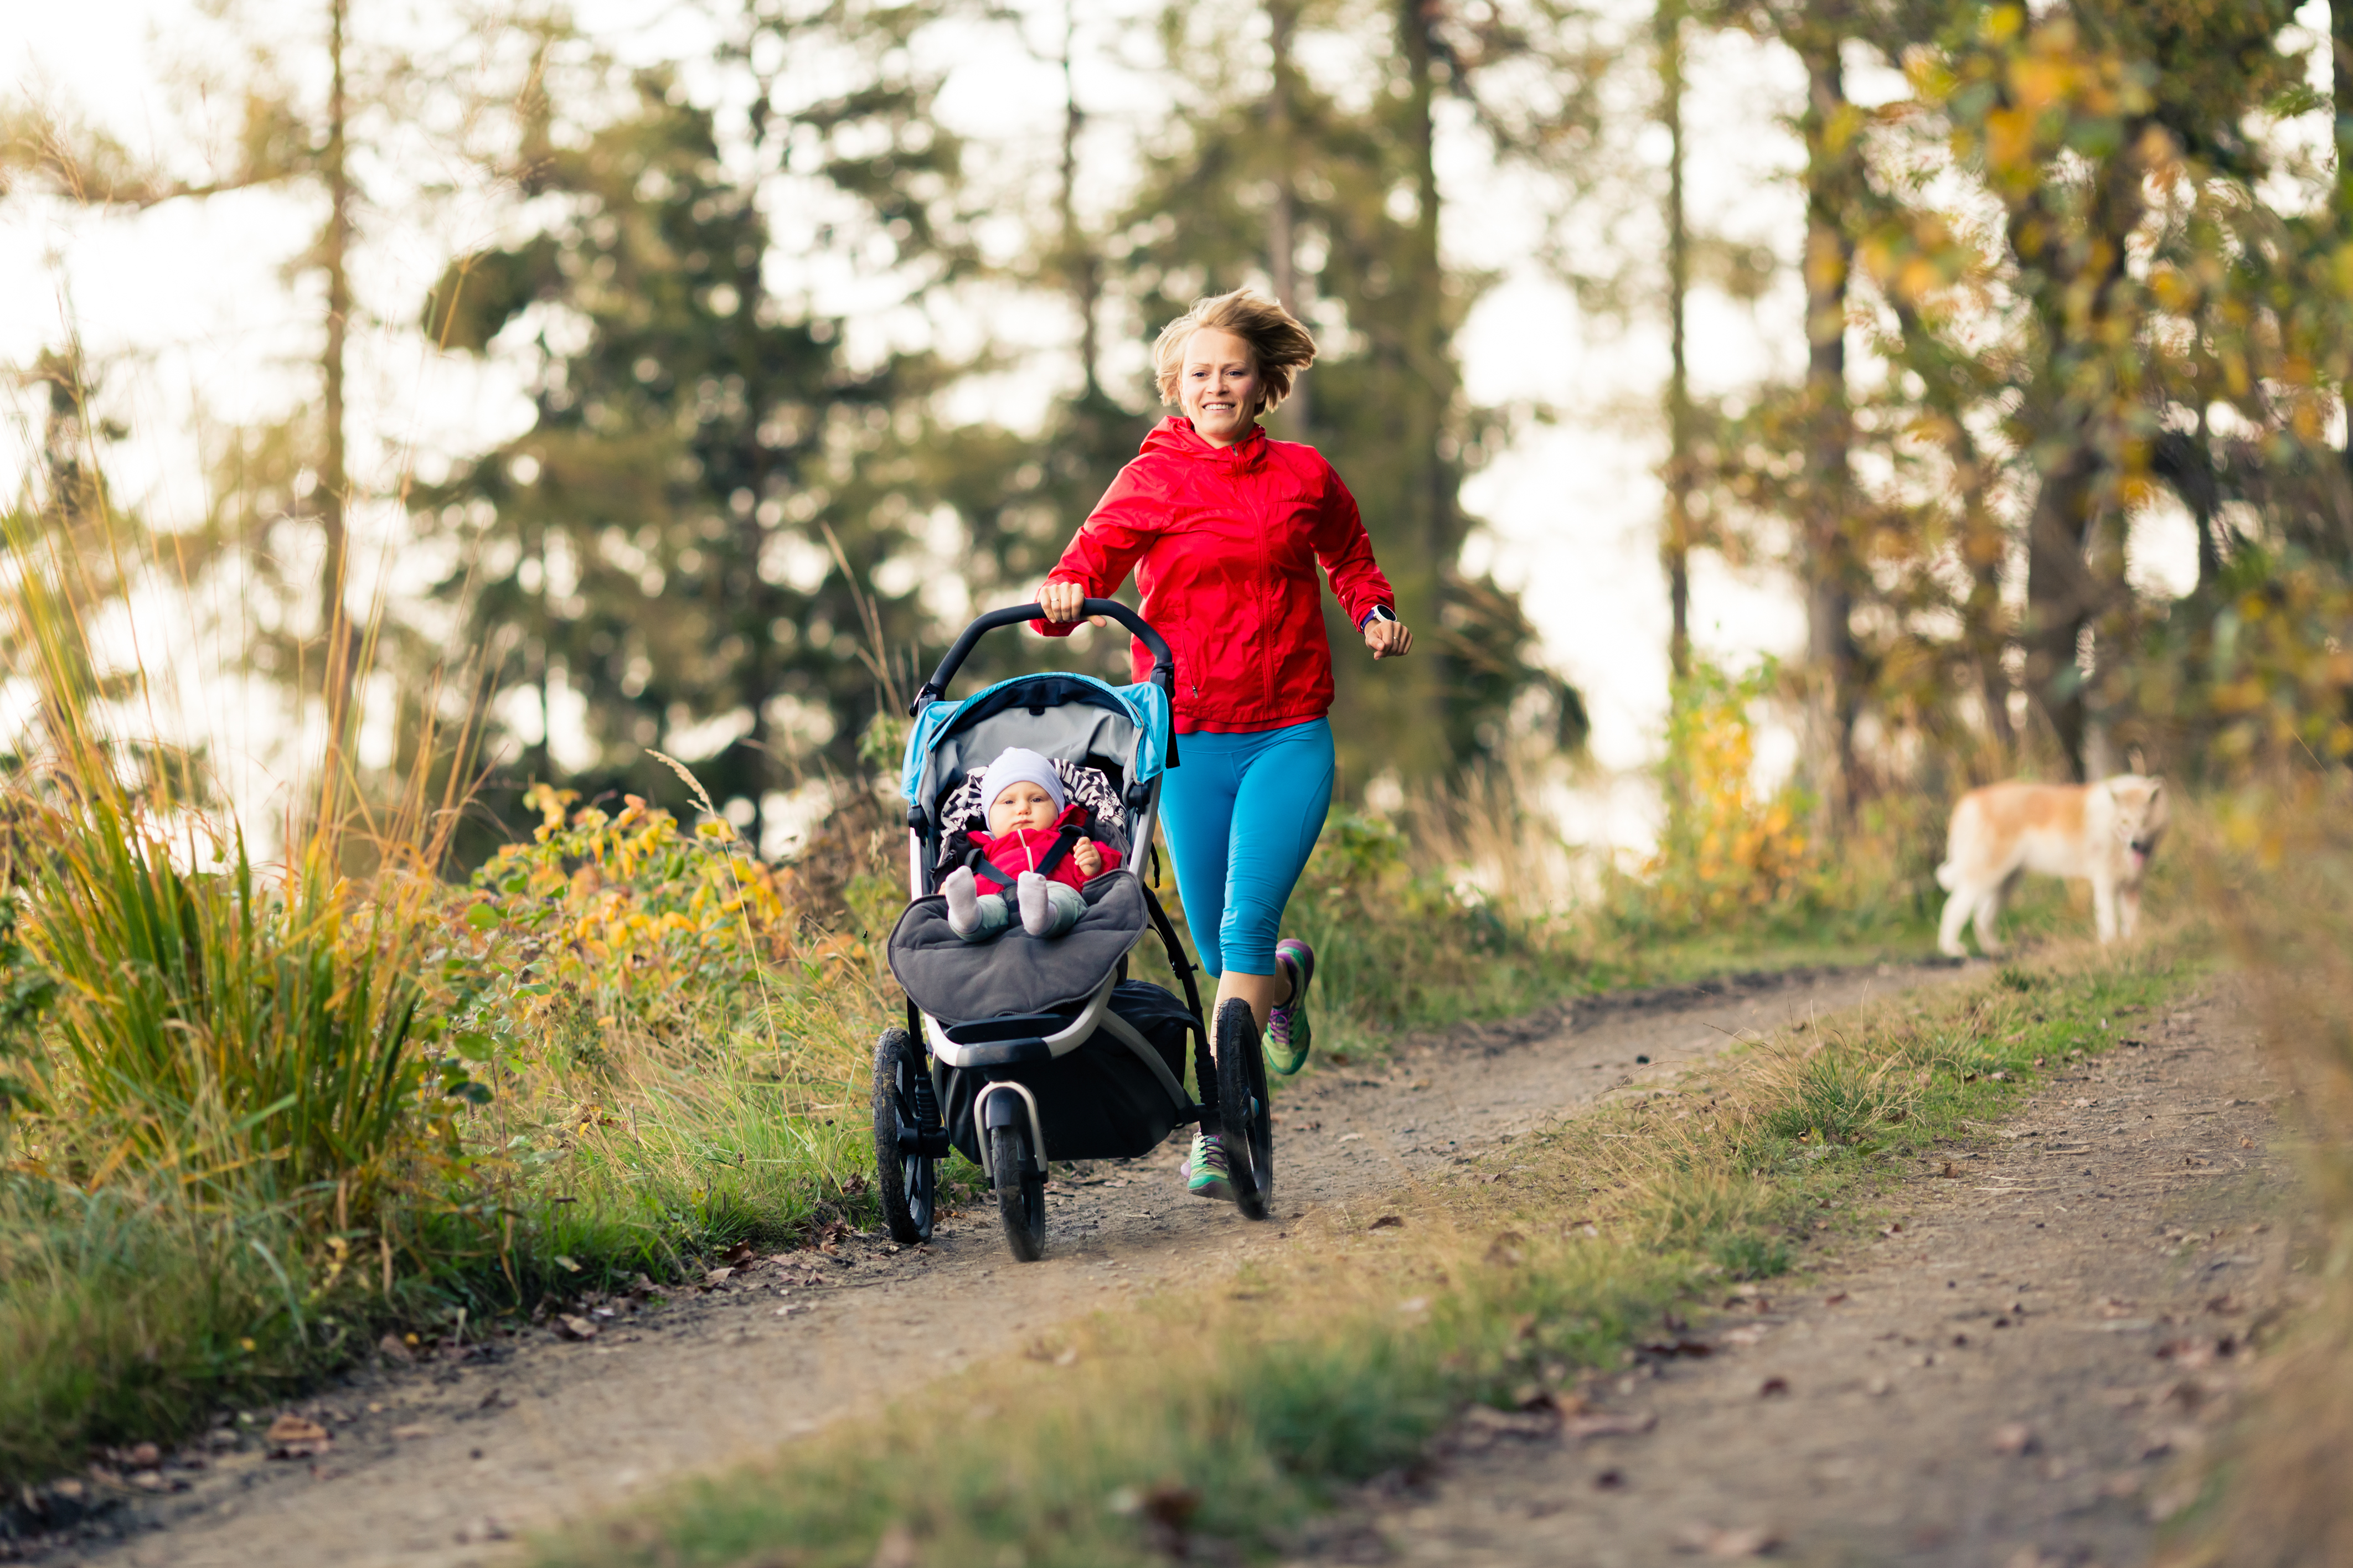 Getting back to running after having a baby